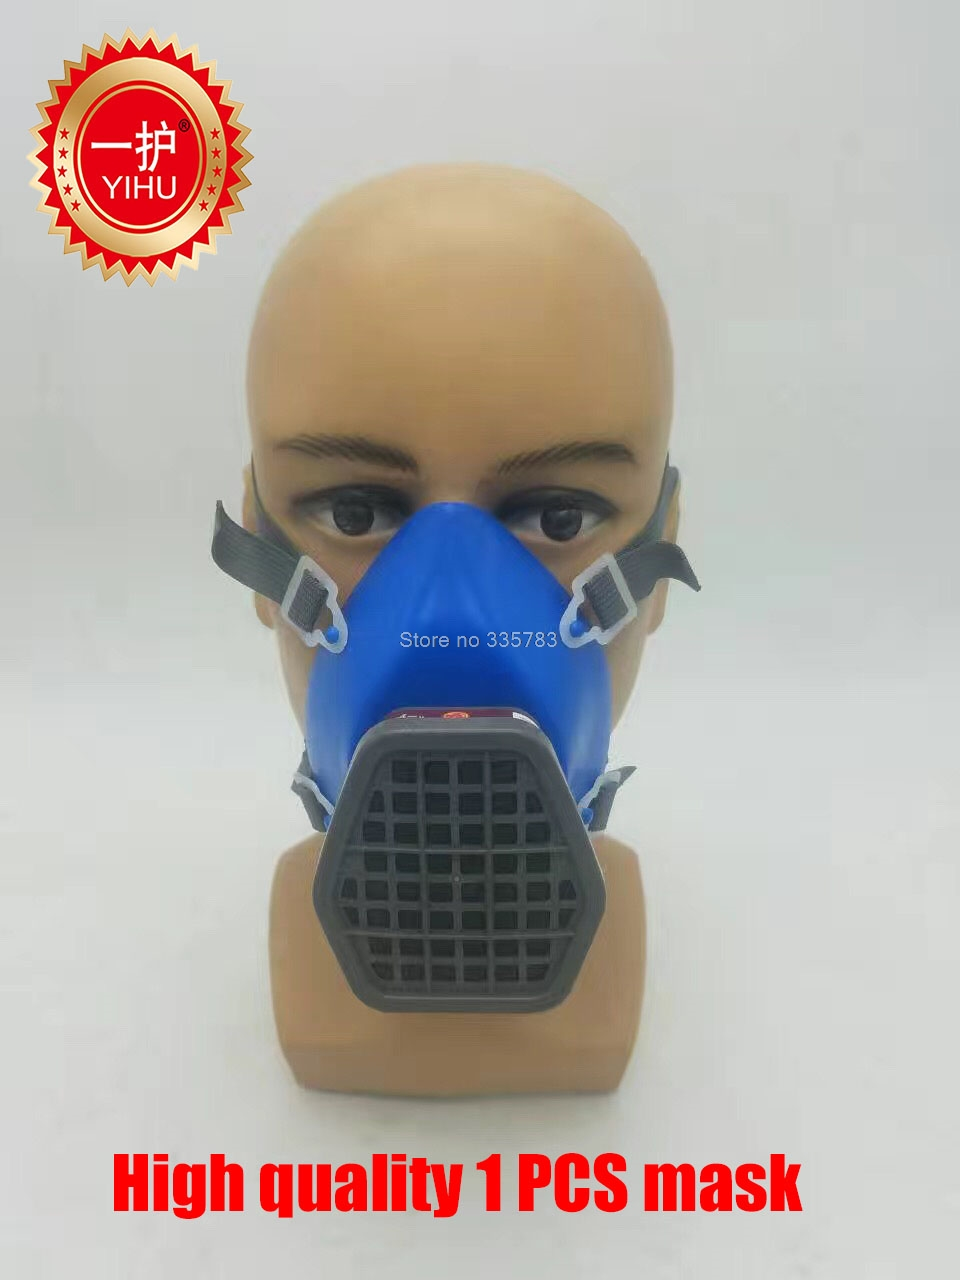 high quality respirator gas mask The newest water chestnut mask with filter Painting pesticide respirator face mask 3m 6300 6003 half facepiece reusable respirator organic mask acid face mask organic vapor acid gas respirator lt091